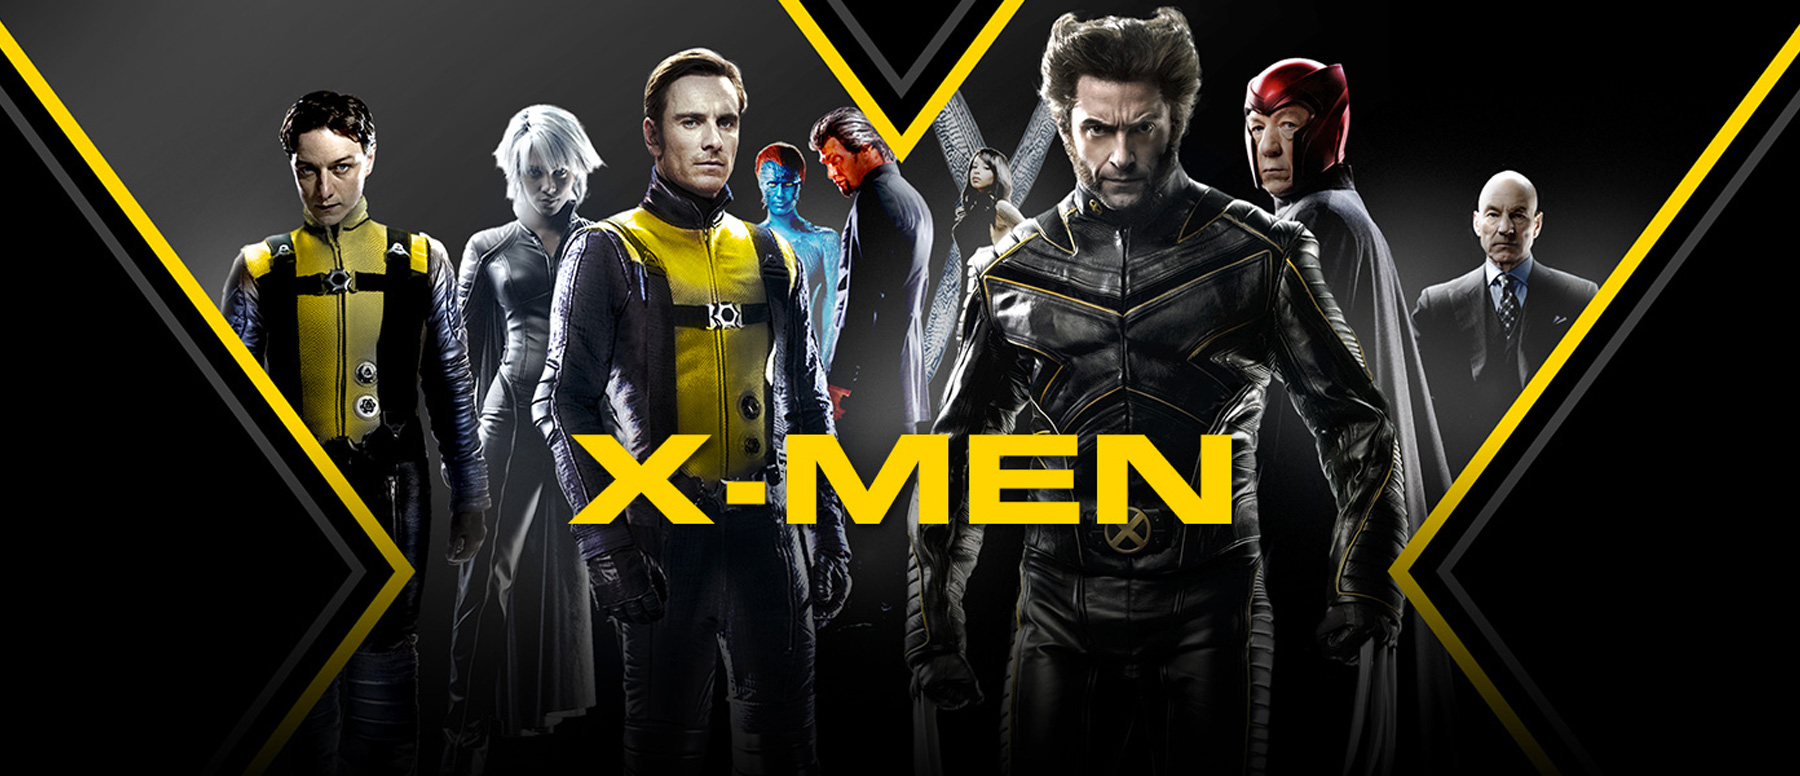 Ranking the X-Men Movies from Worst to Best - Sequential Planet